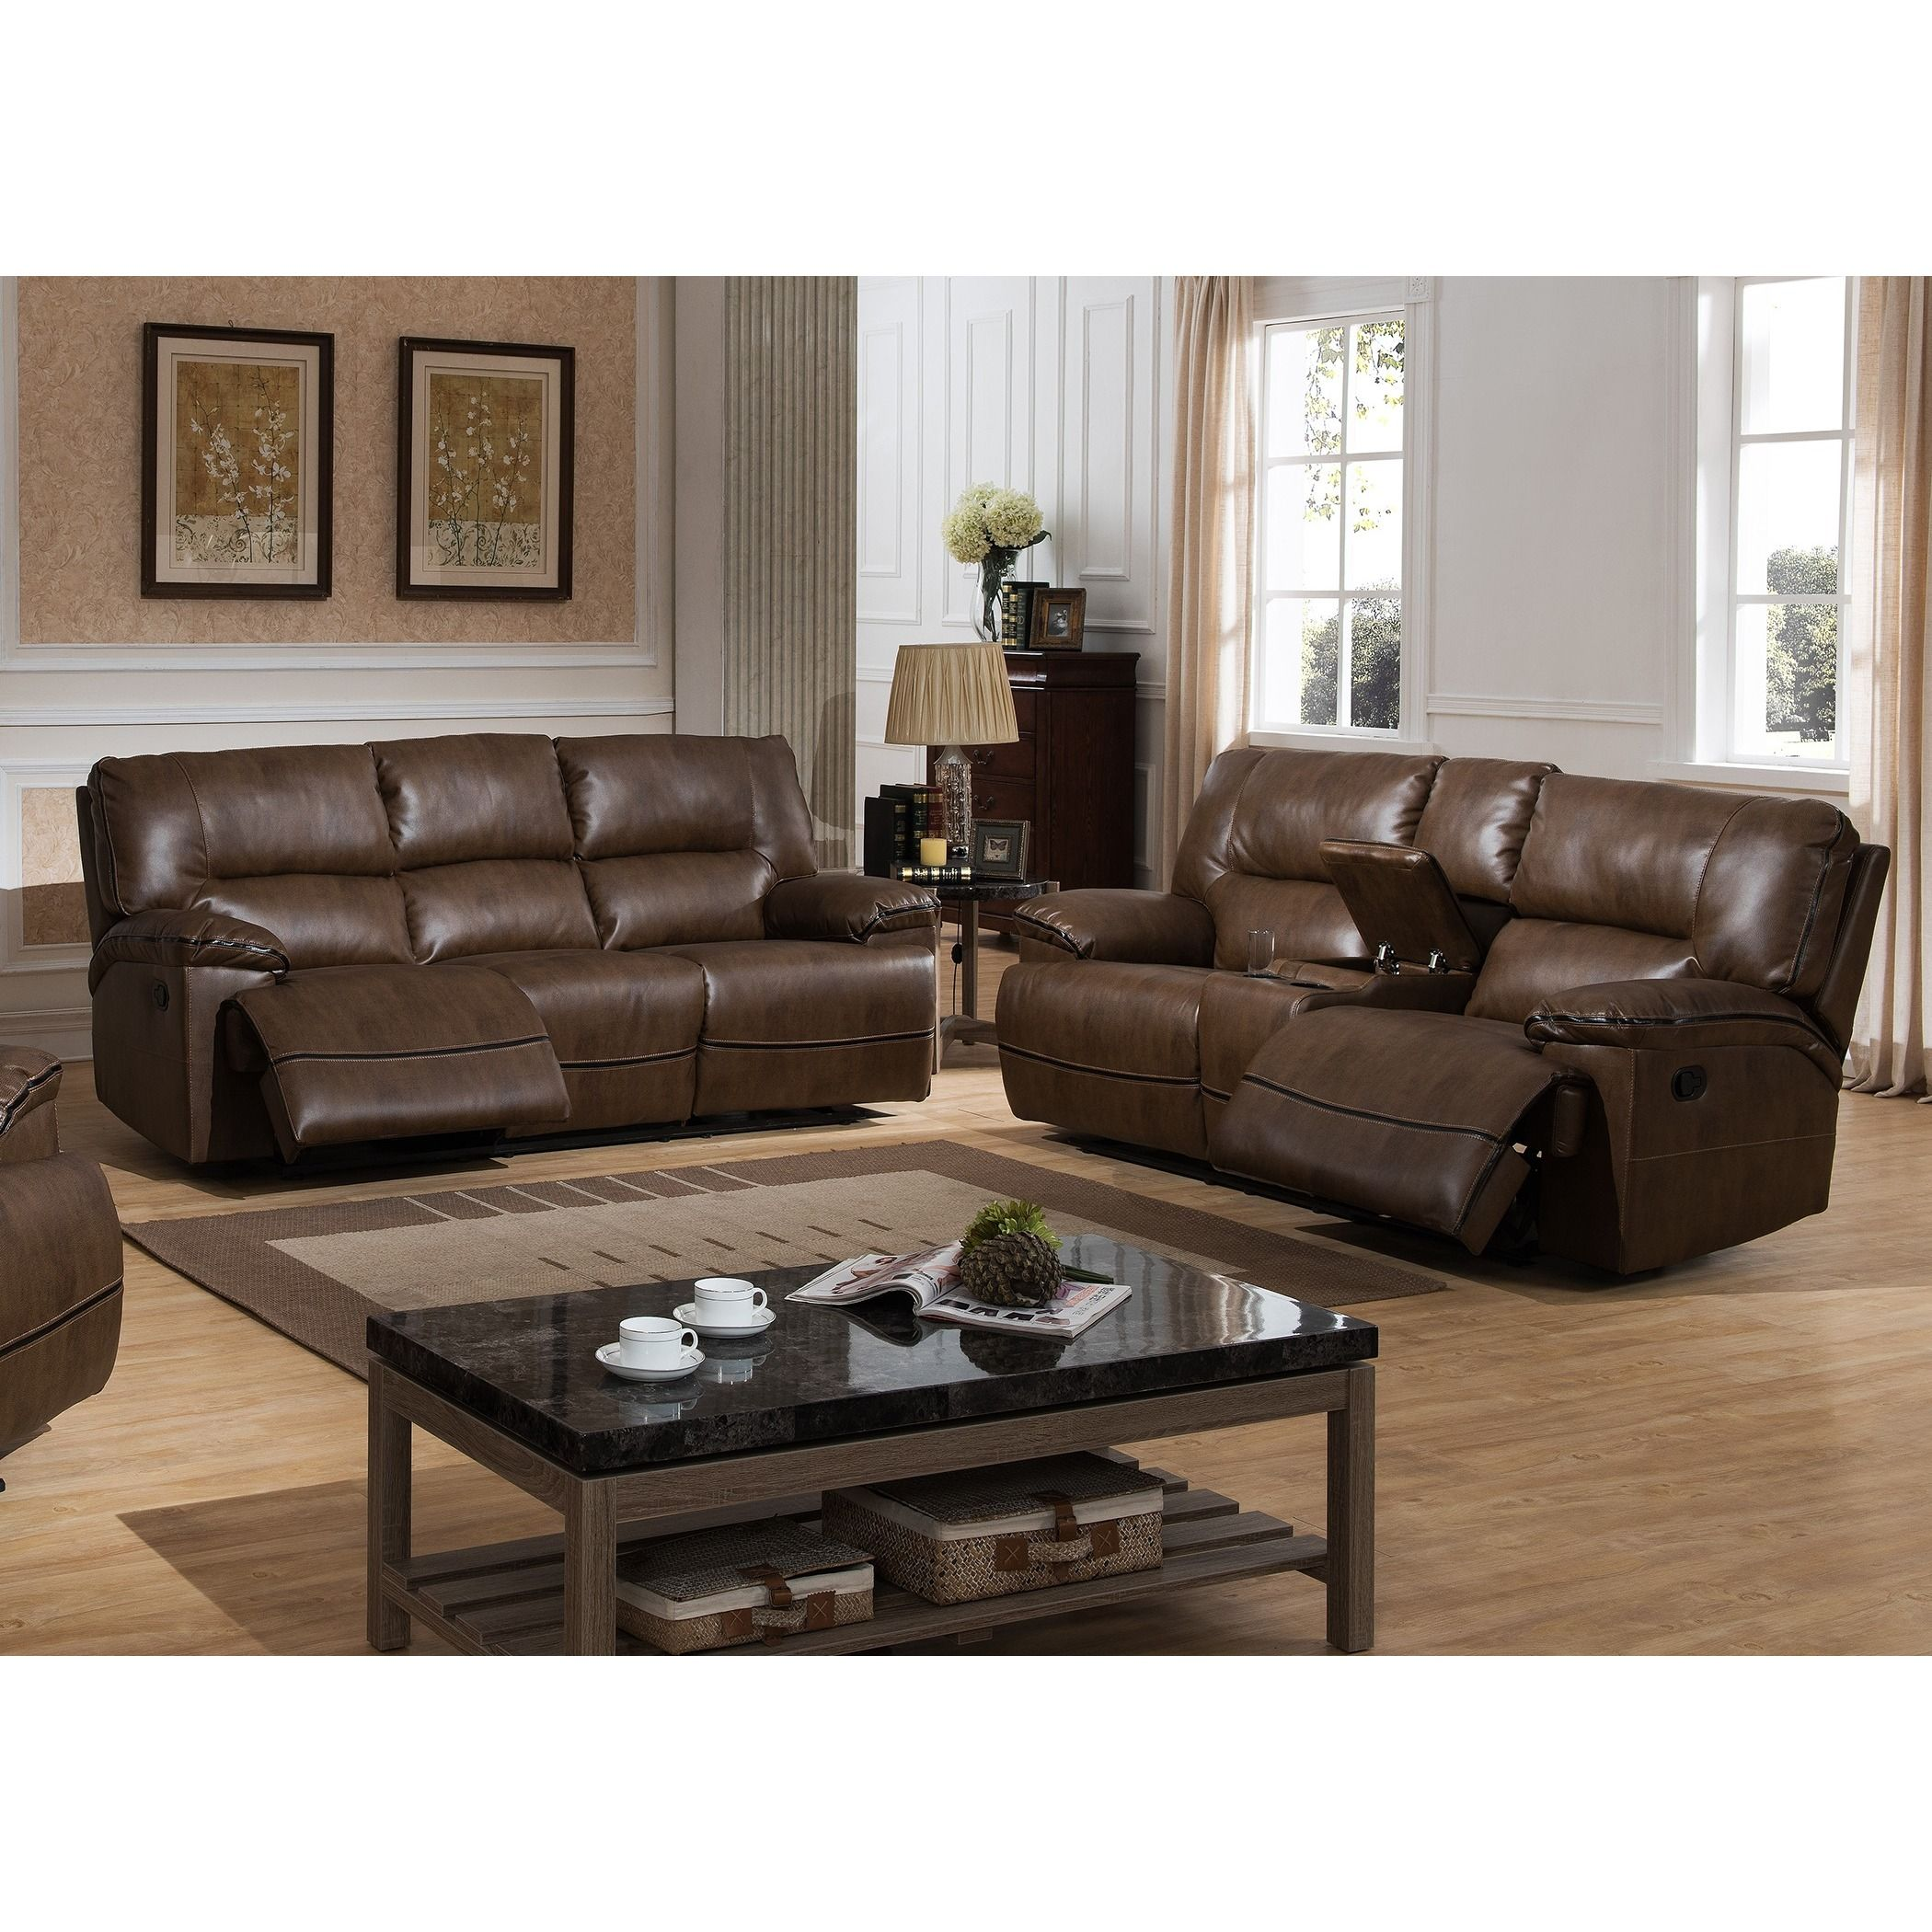 rotmans piece item ma england with worcester providence new set lsg furniture living boston room cuddler and collections small patina two ri sofa sectional right